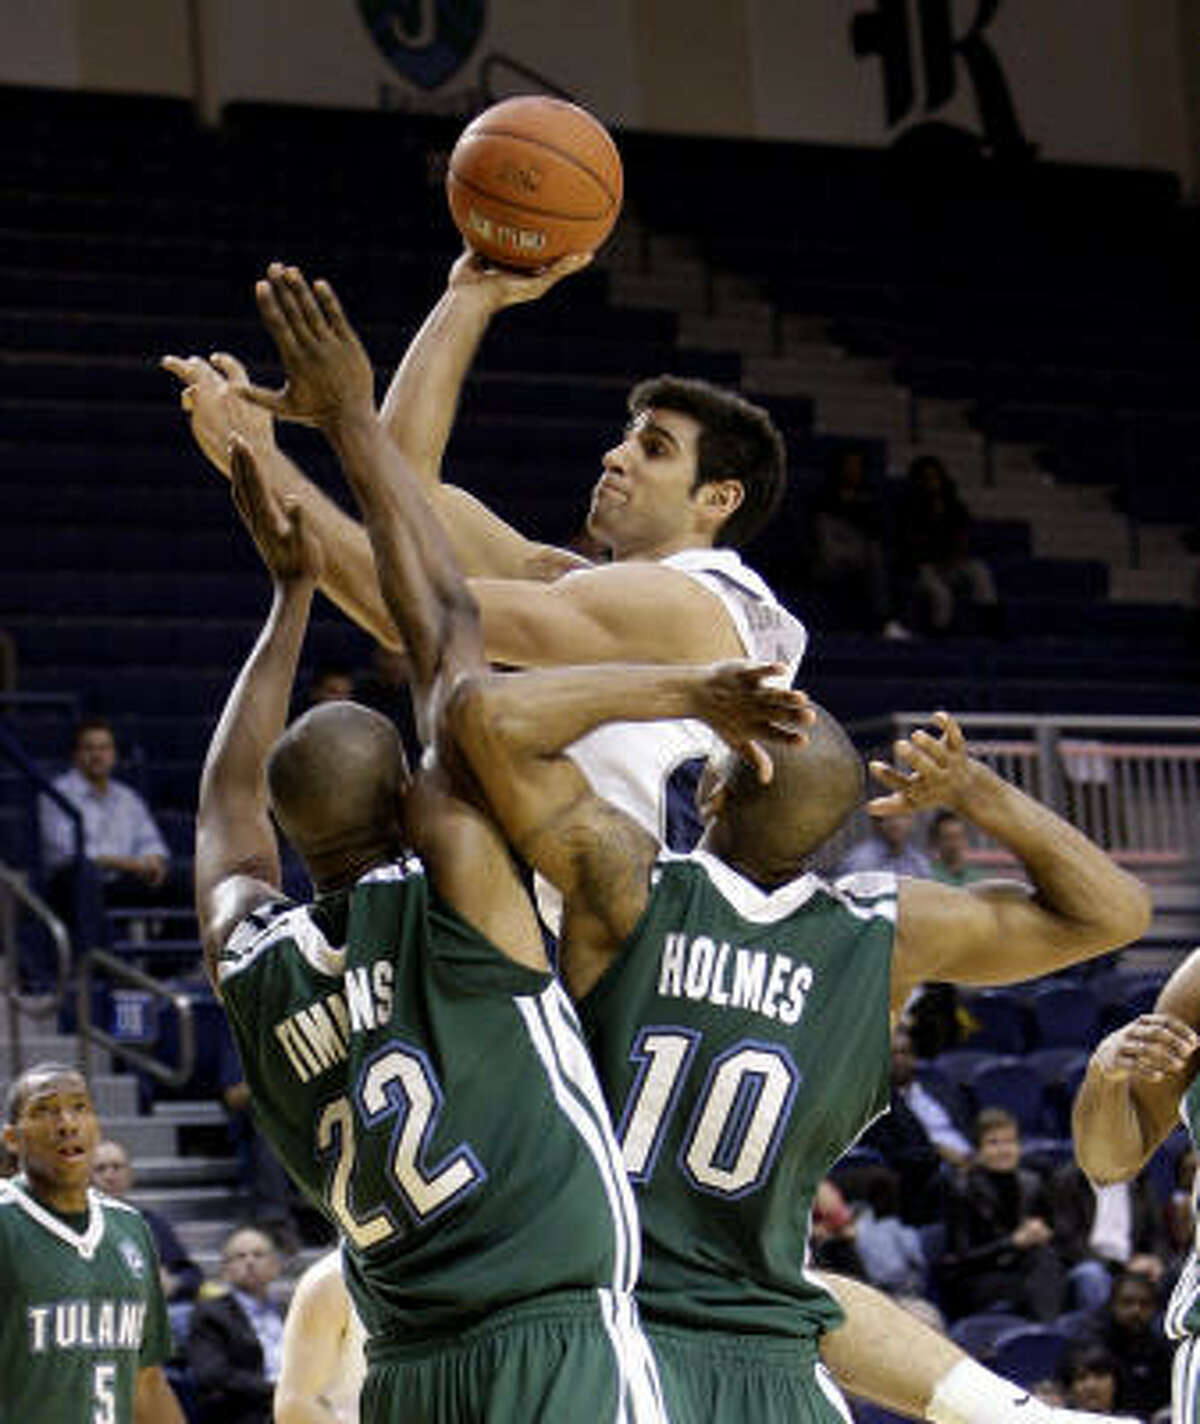 Jan. 5: Tulane 85, Rice 81 Rice's Arsalan Kazemi shoots over Tulane's Kendall Timmons (22) and Aaron Holmes during Wednesday's game at Tudor Fieldhouse. Kazemi scored career-high 28 points in a losing effort.